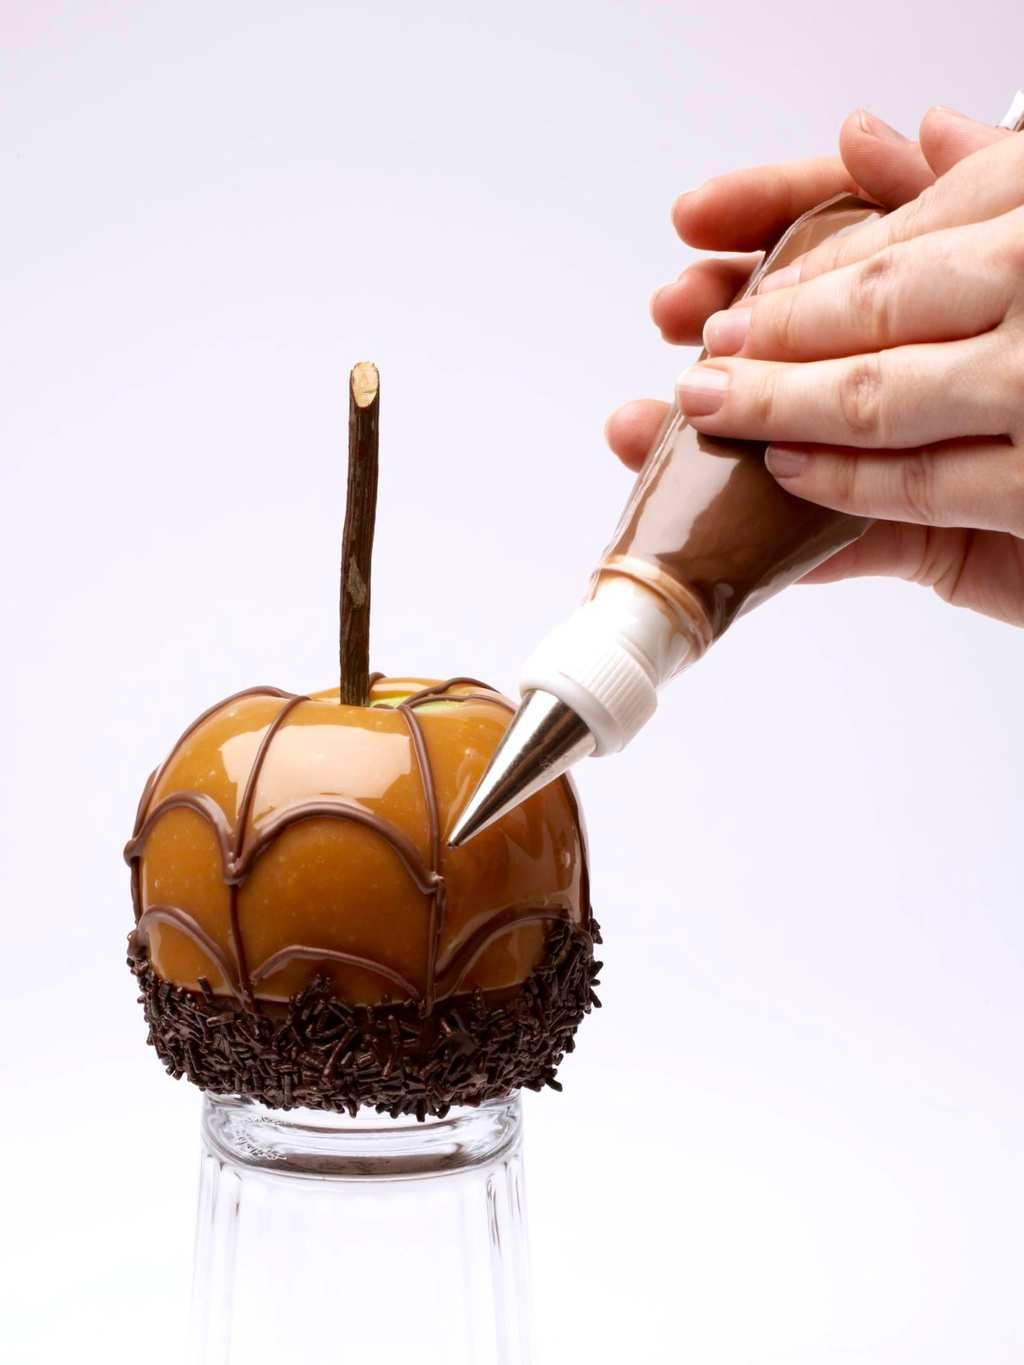 spiderweb caramel apples chocolate spiderweb